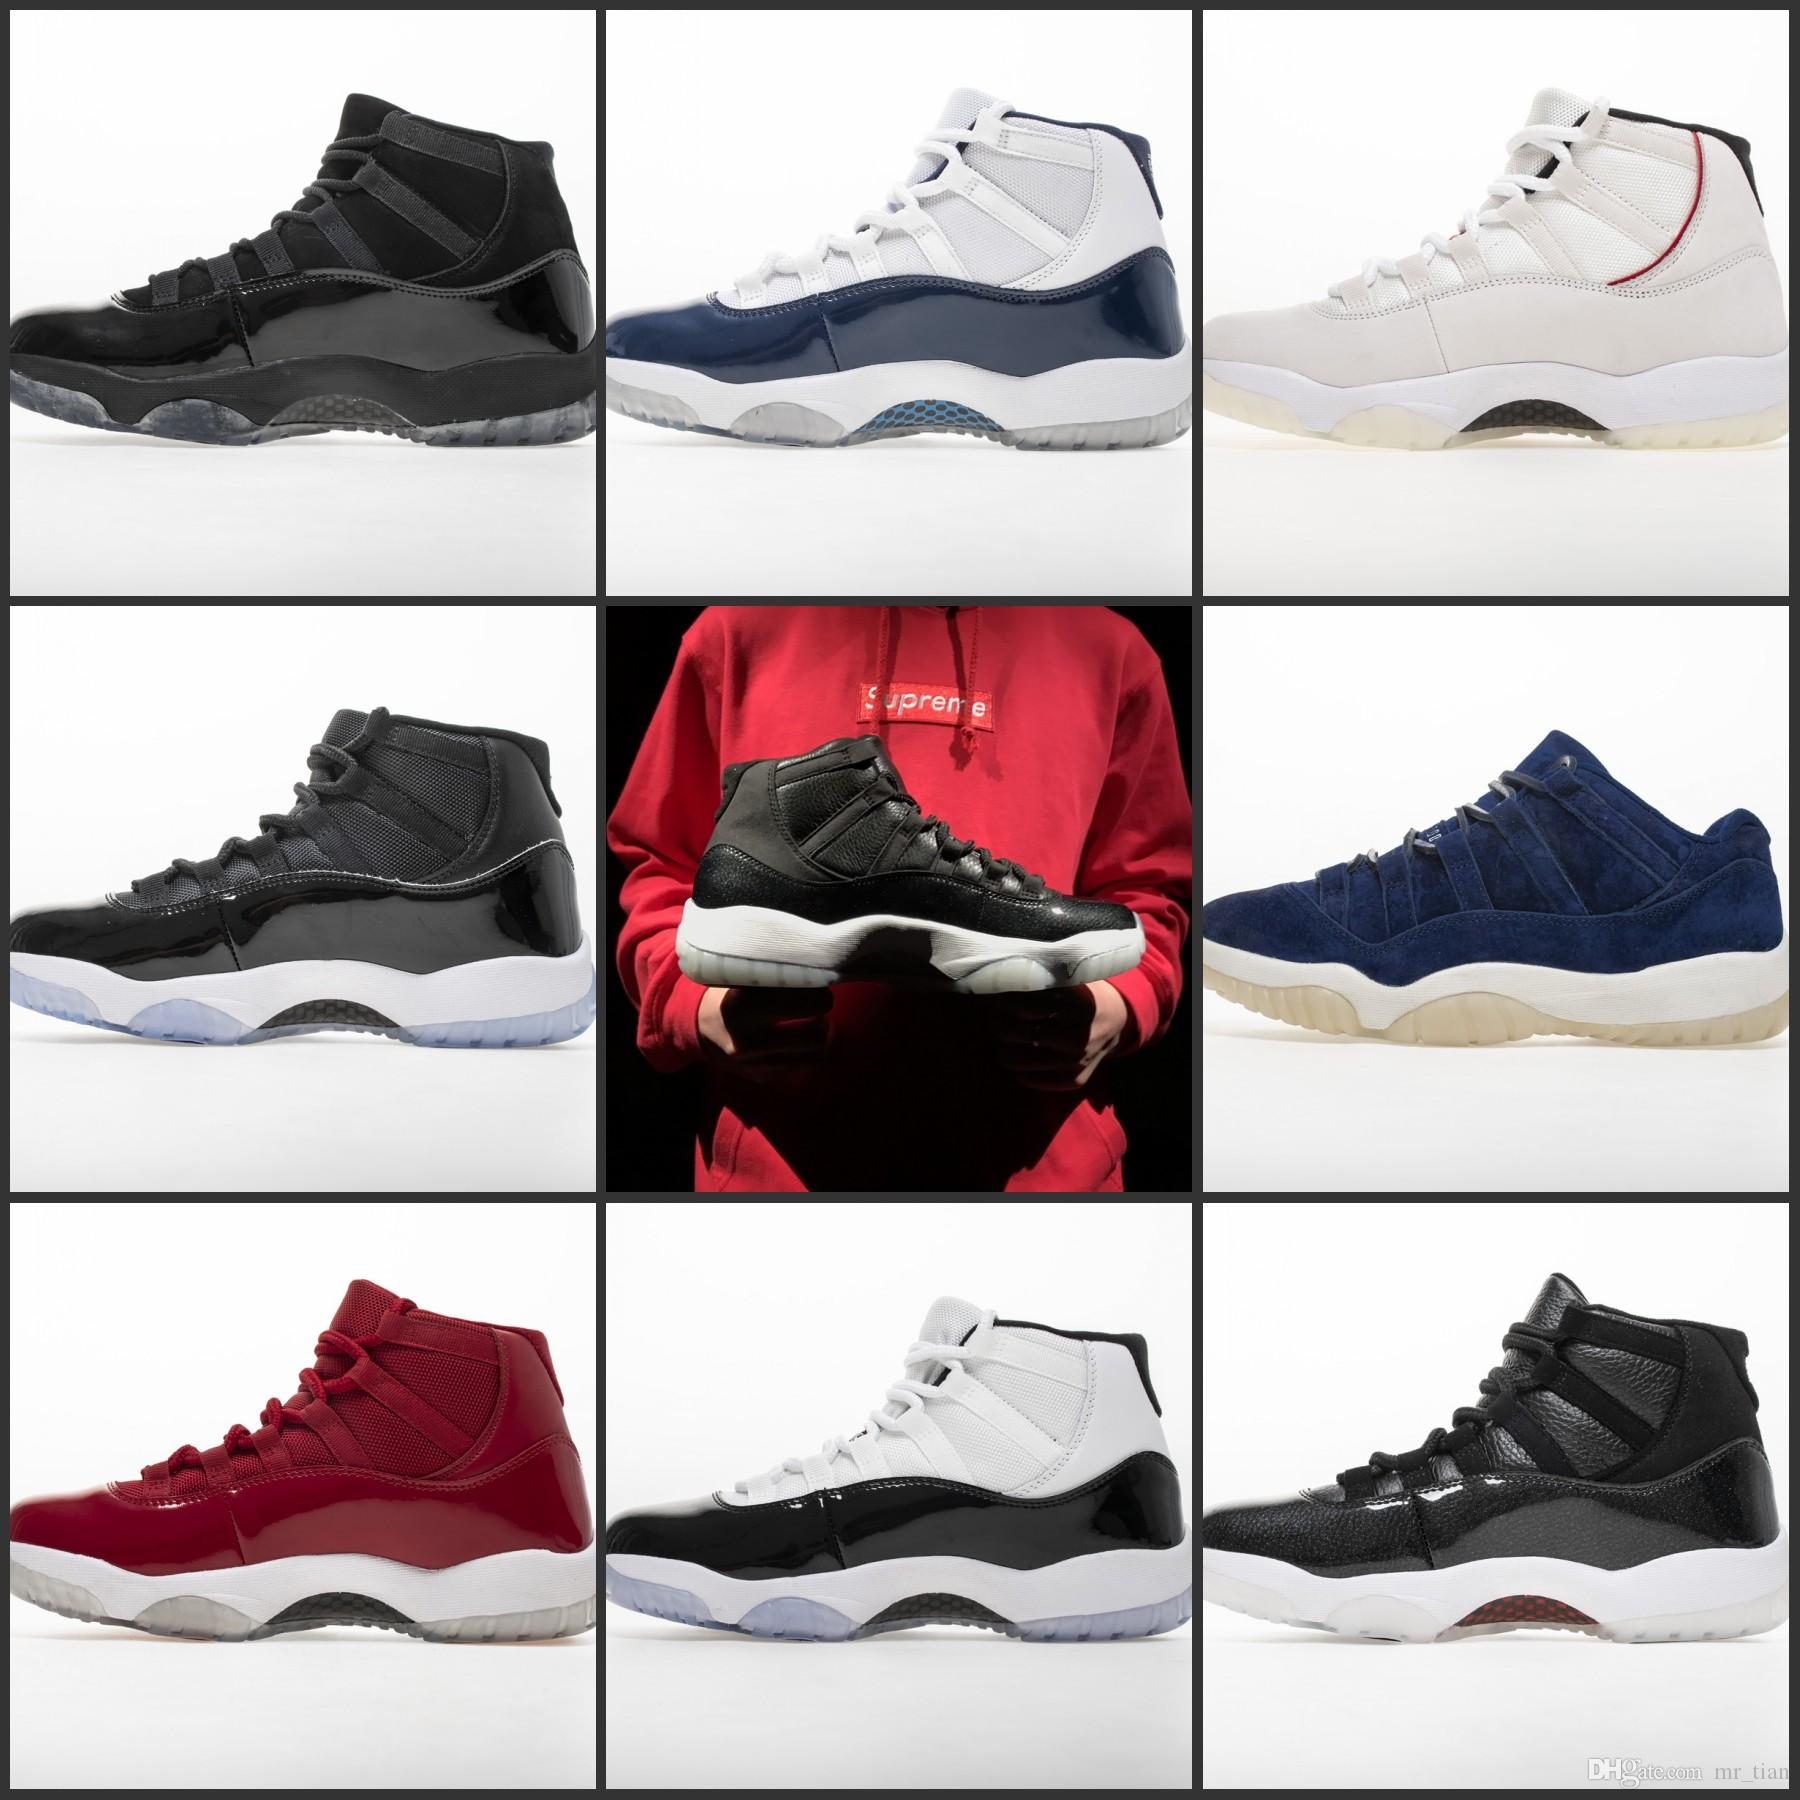 best service de110 eefc3 Nike Air Jordan 11 Retro 2019 Concord High 45 11XI 11S Gorra PRM Heiress  Gym Red Chicago Platinum Tint Space Jams Hombres Y Mujeres Zapatillas De  Baloncesto ...